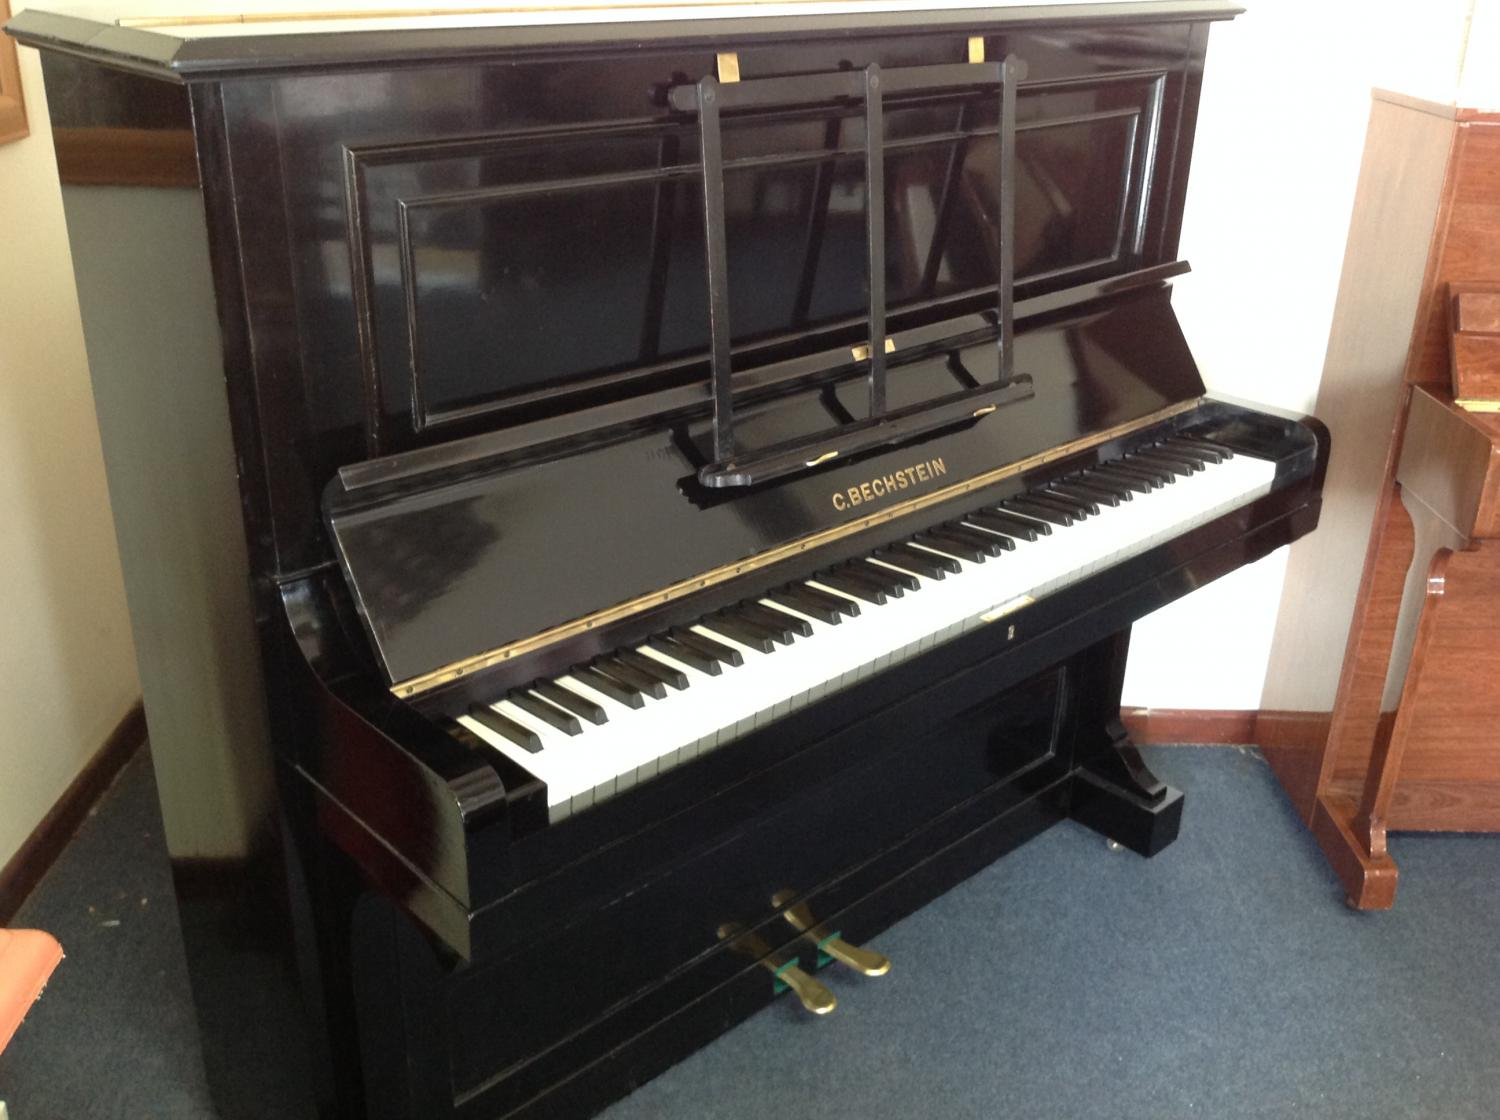 bechstein model 10 upright piano for sale in restored older pianos for sale. Black Bedroom Furniture Sets. Home Design Ideas